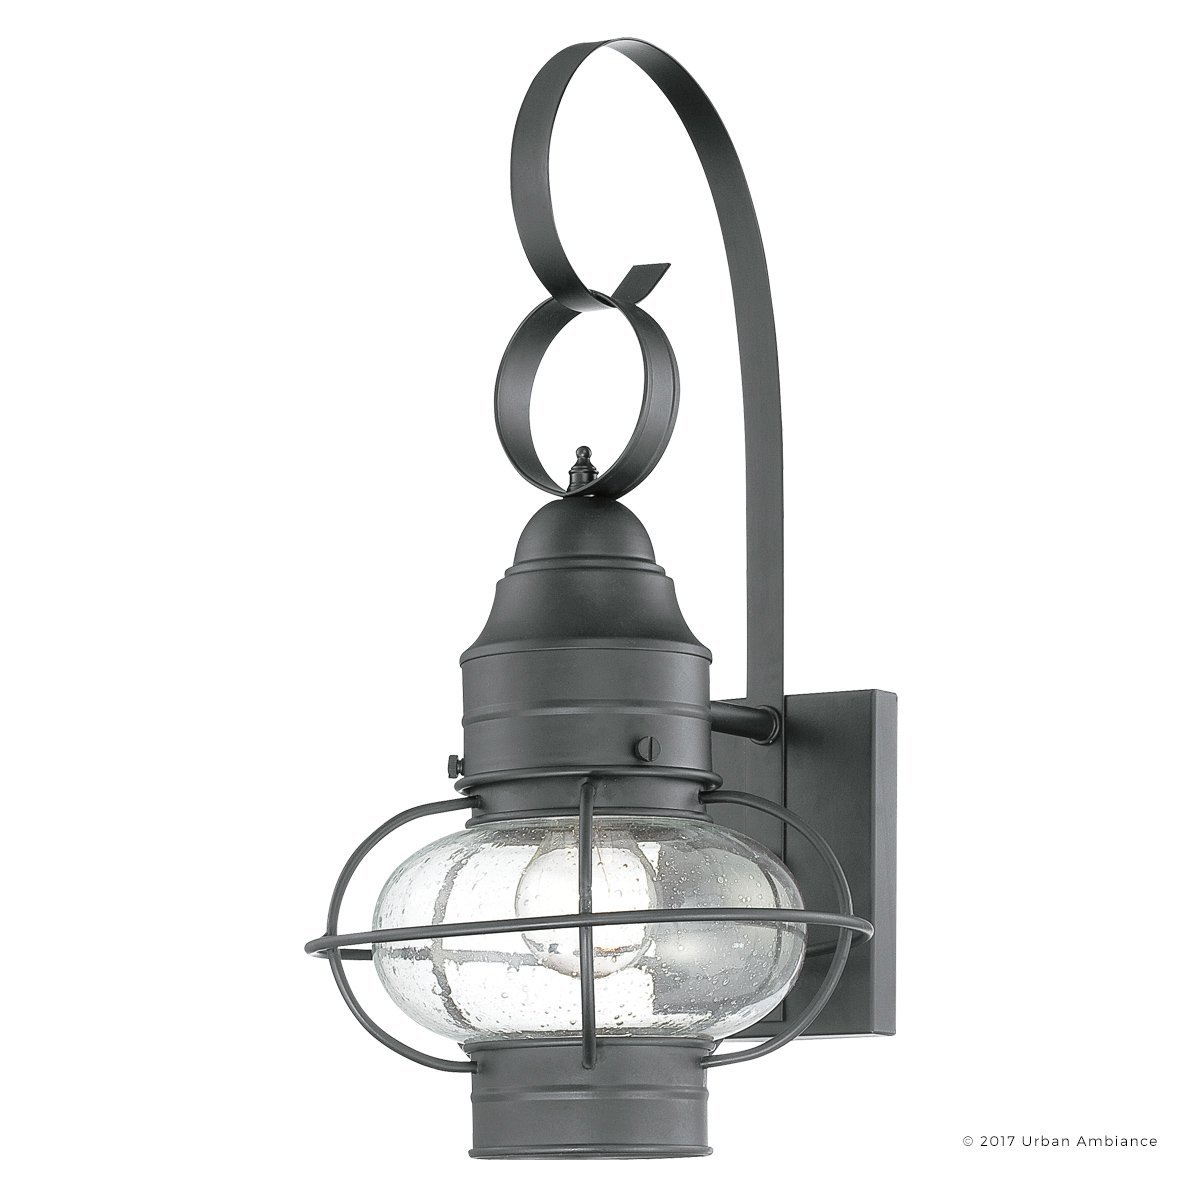 Luxury Nautical Outdoor Wall Light, Medium Size: 17.5''H x 9''W, with Art Deco Style Elements, Cage Design, High-End Black Silk Finish and Seeded Glass, UQL1030 by Urban Ambiance